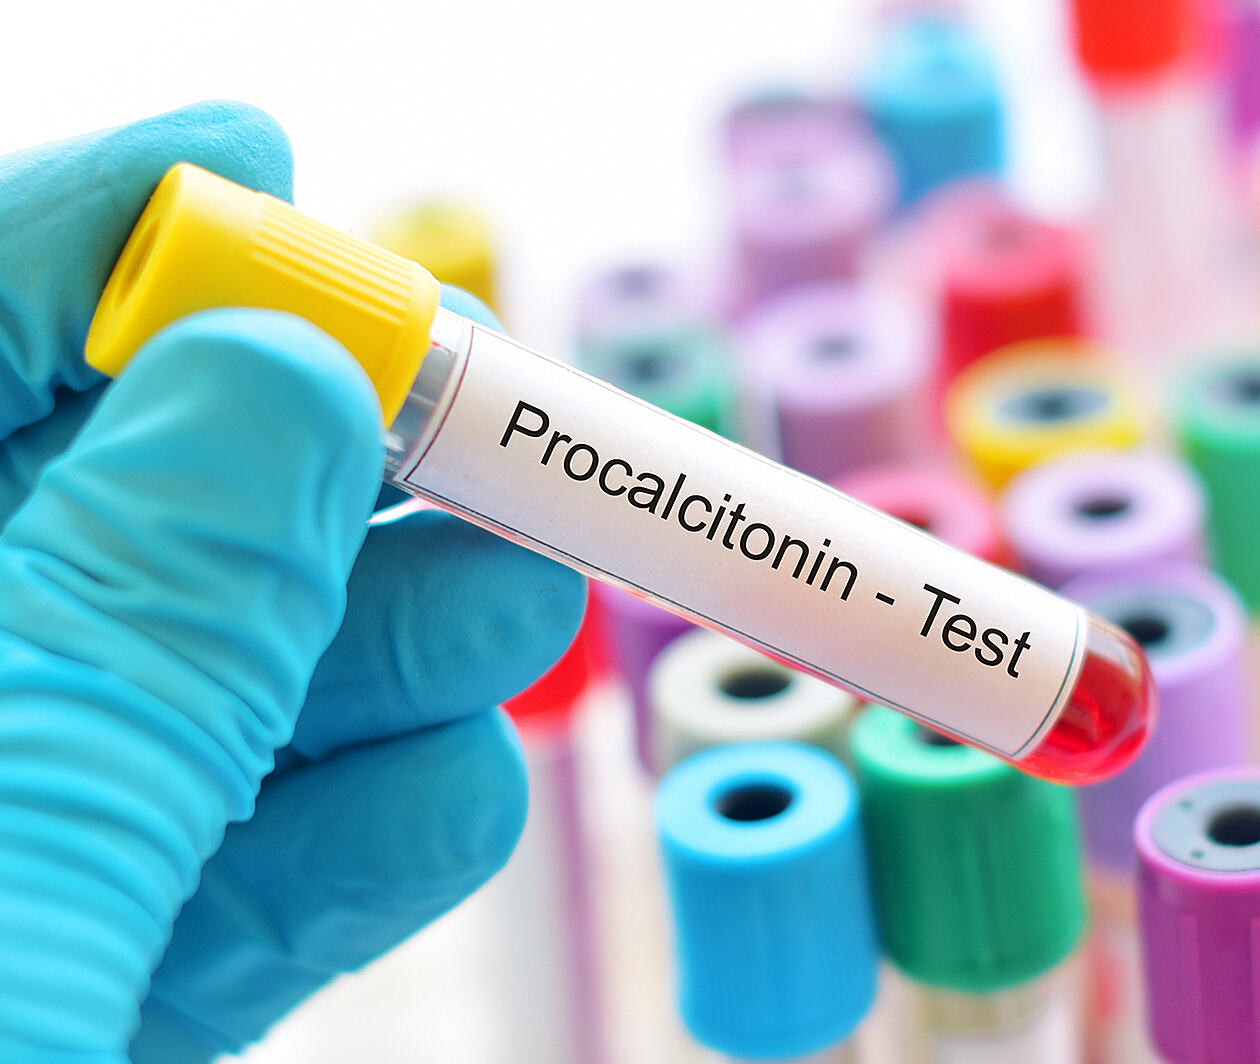 Procalcitonin: PCT as a Biomarker for Antimicrobial Stewardship